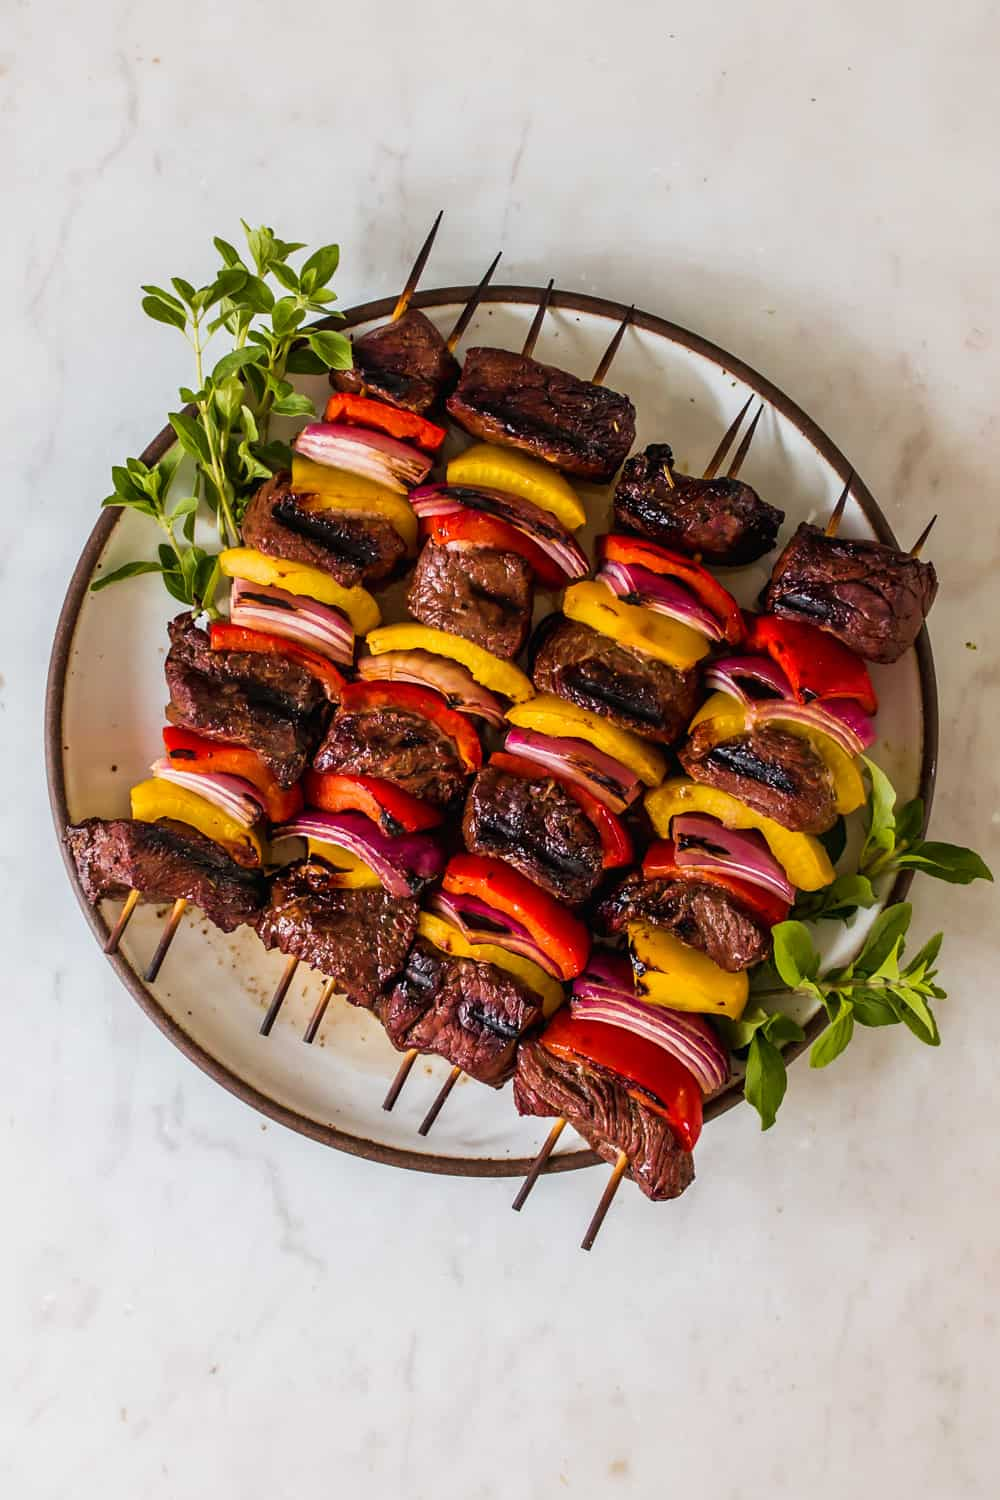 a white plate holding 4 grilled steak kabobs with red and yellow peppers and red onion